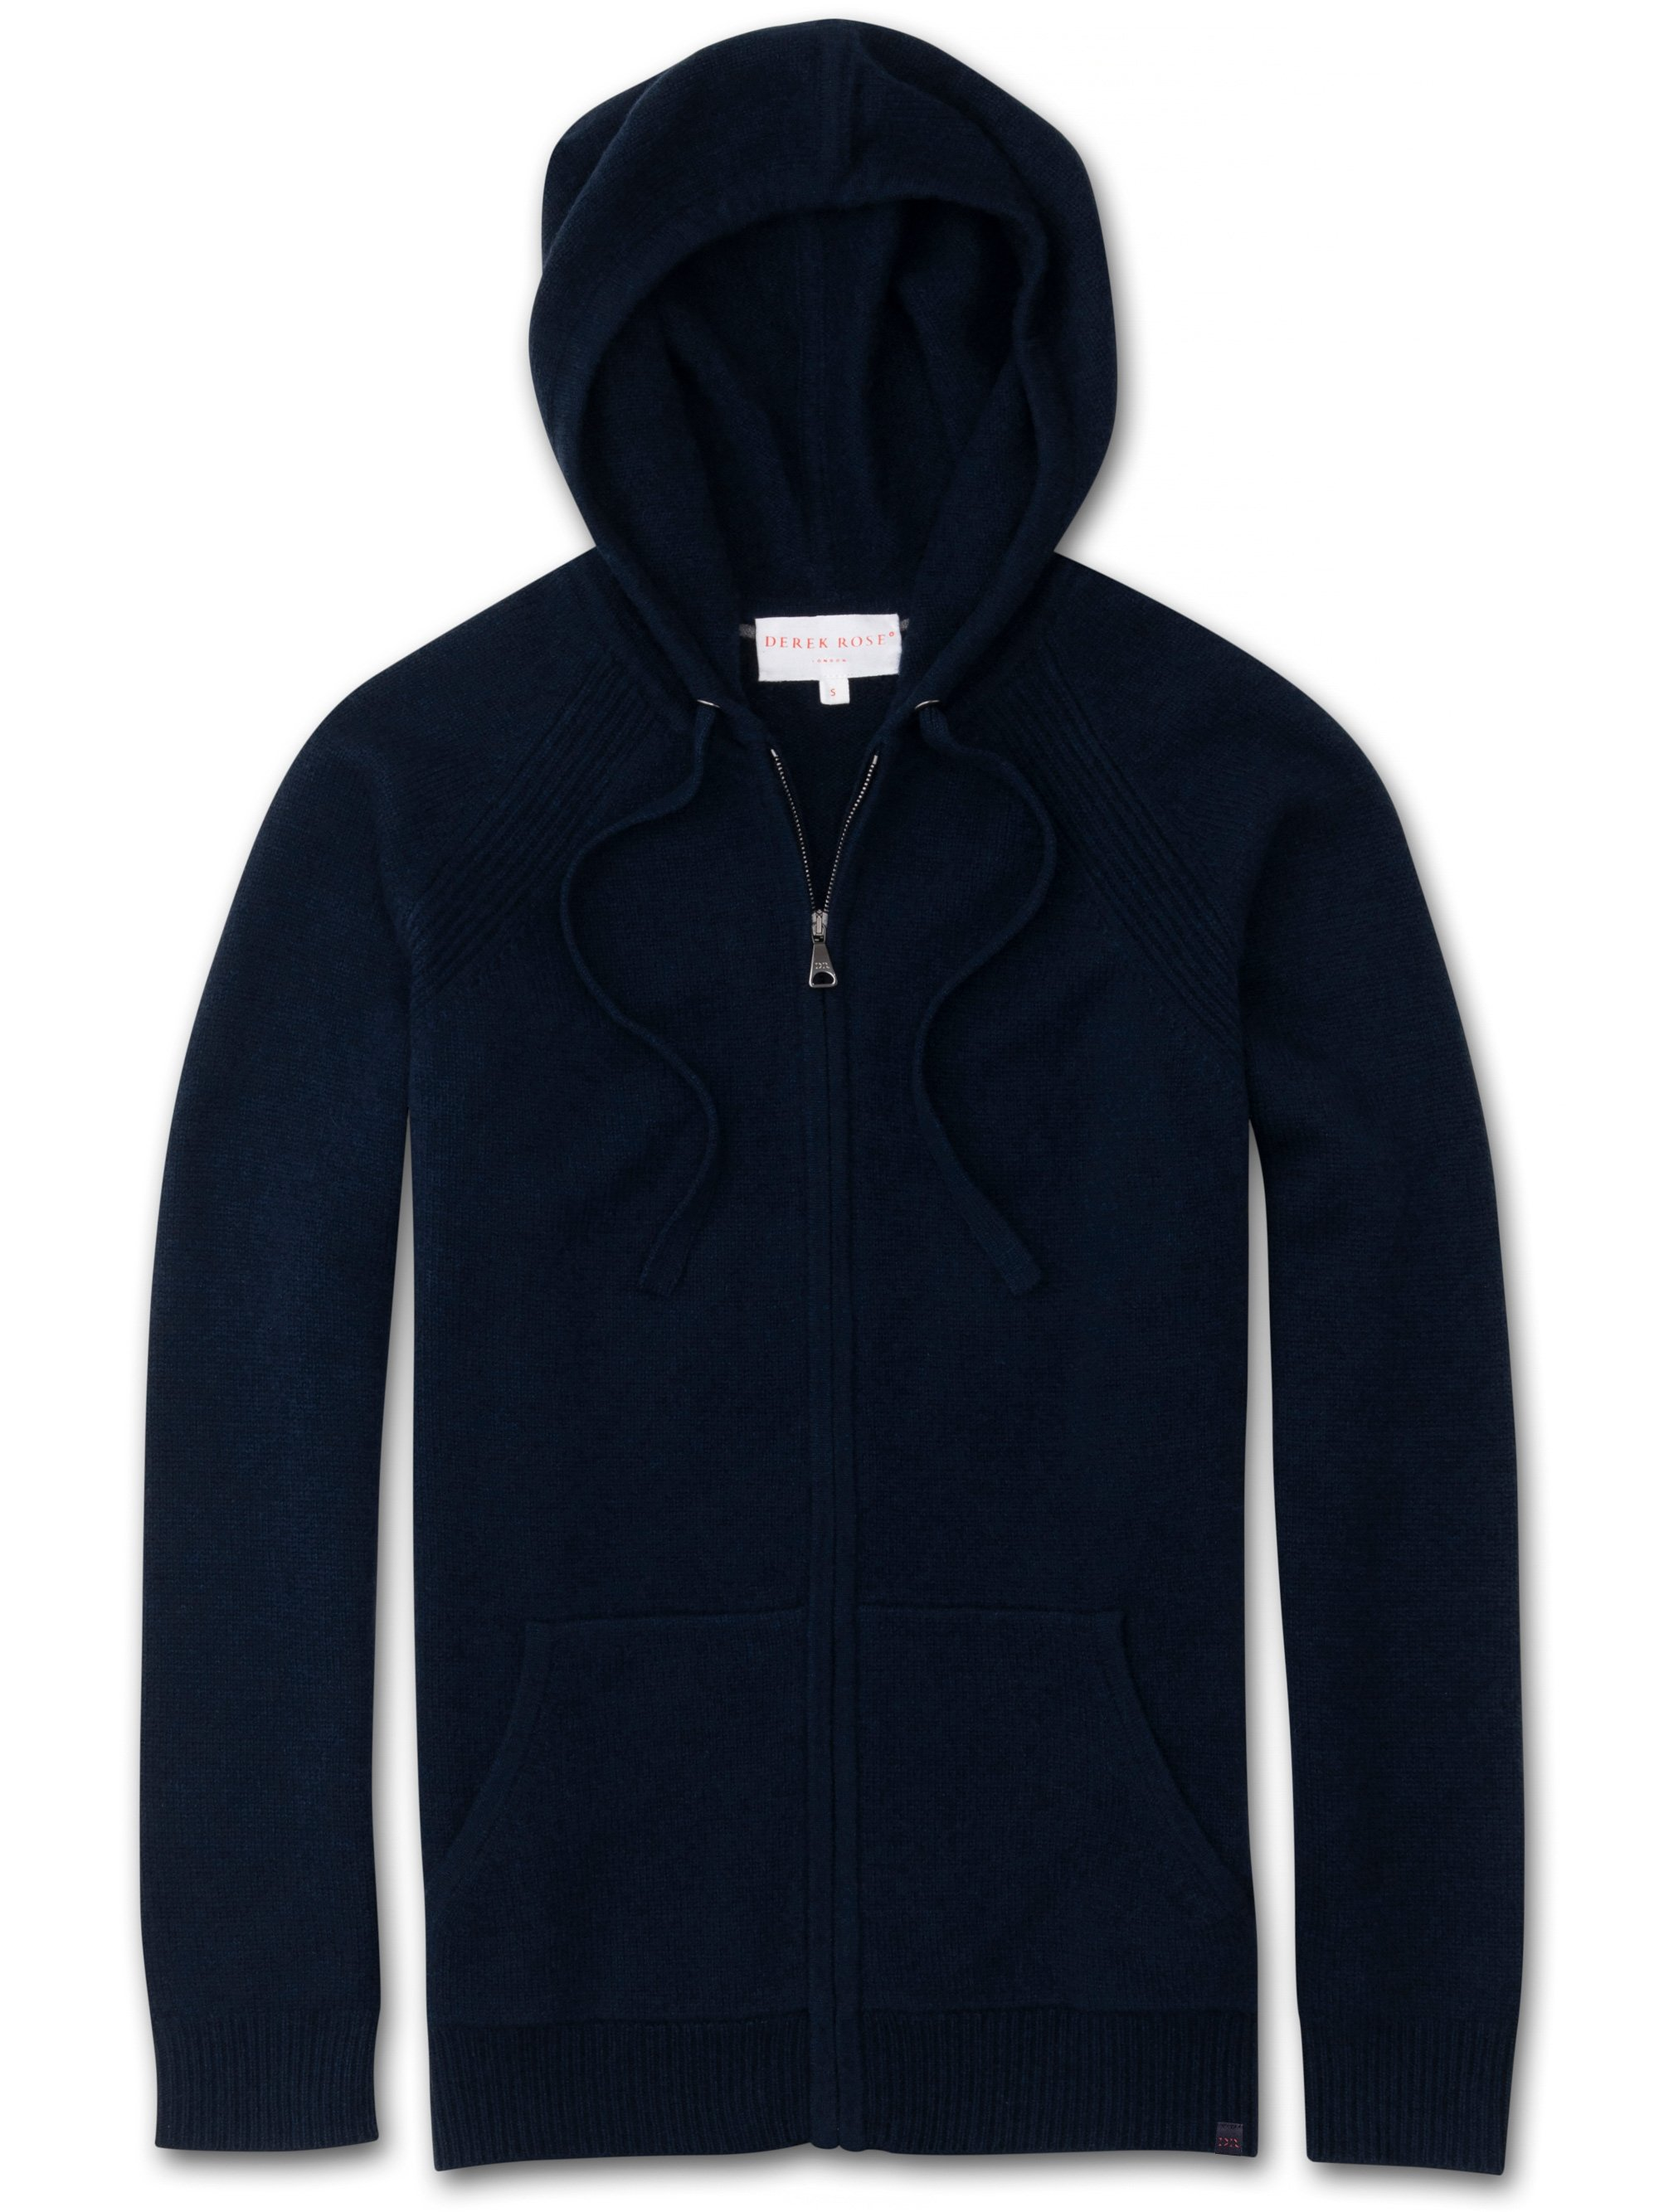 Women's Cashmere Hoodie Daphne Pure Cashmere Navy